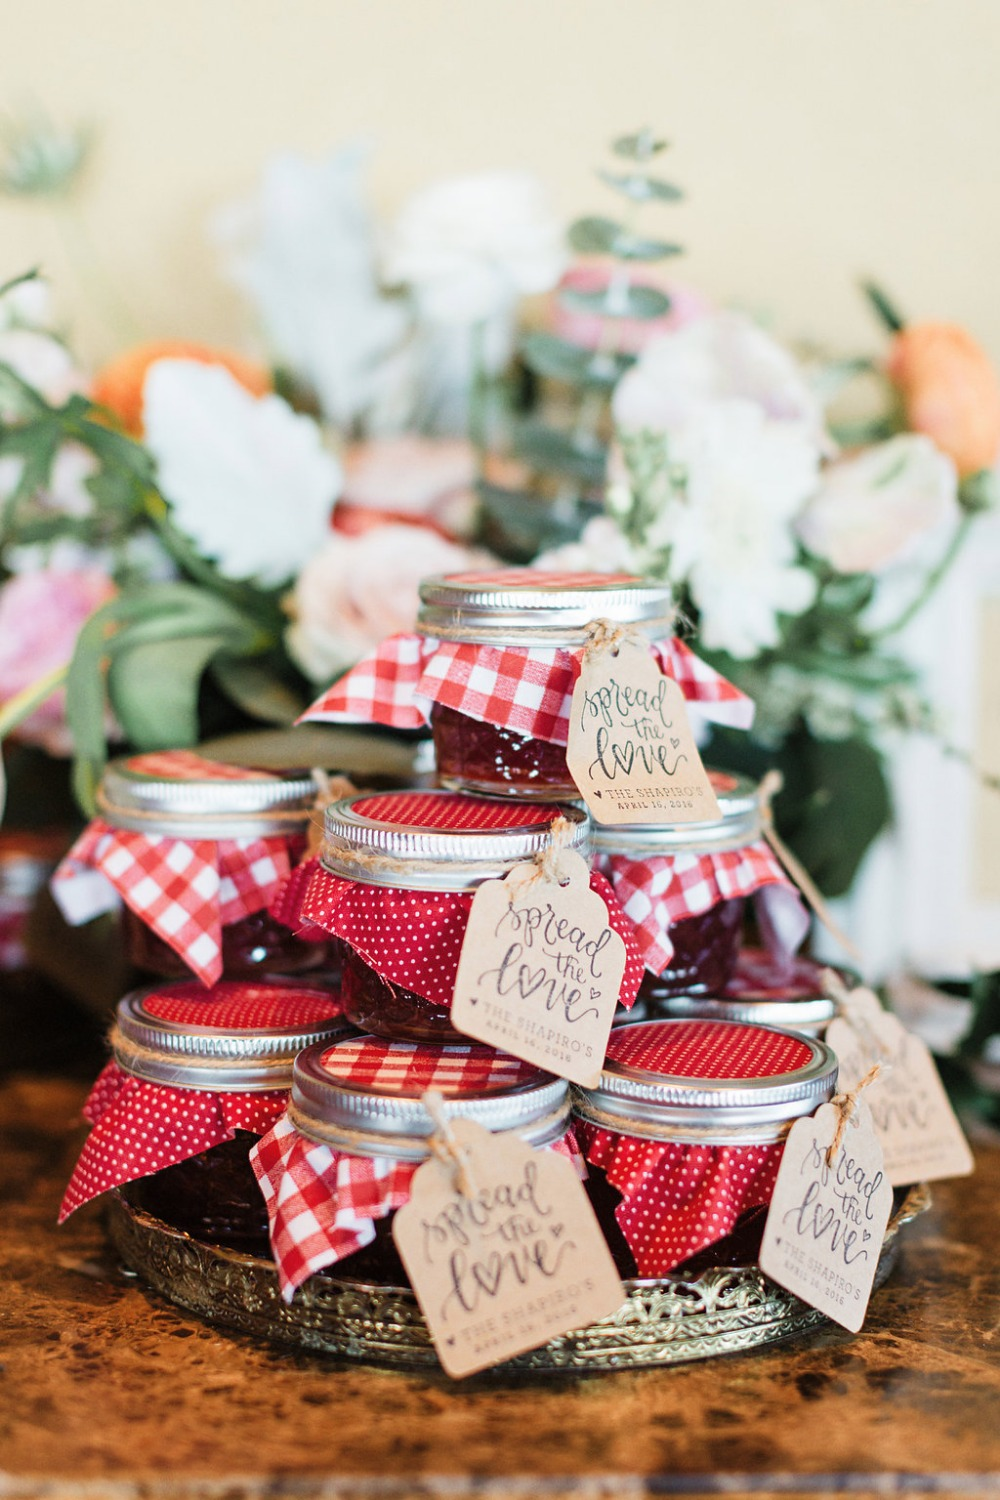 Spread the love wedding favors